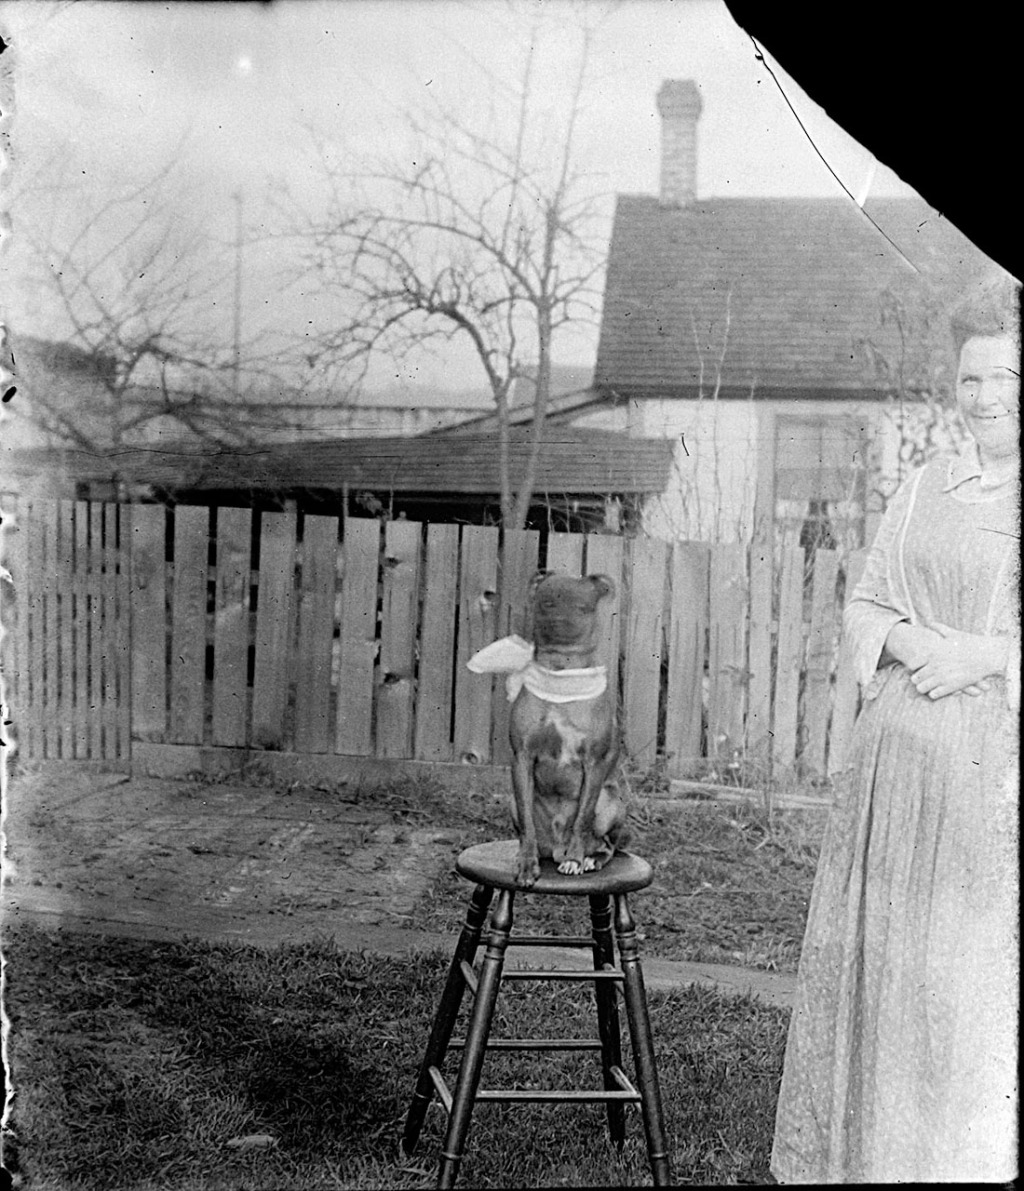 A woman with her dog, who is on a stool, in their back yard.